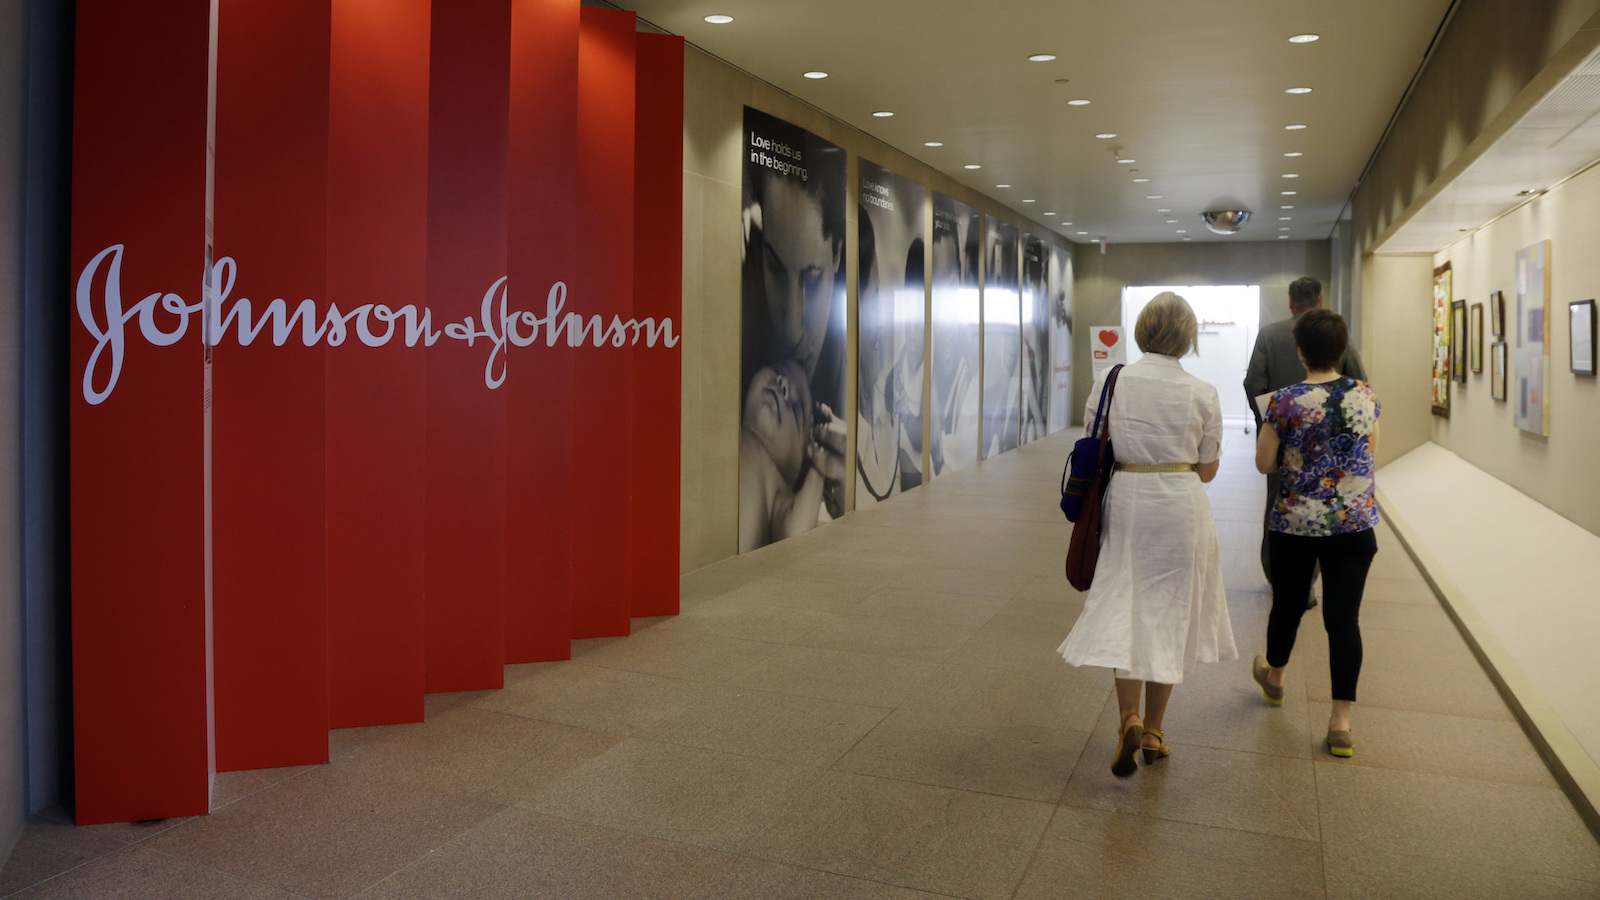 Jnj My Store >> J J Says It Will Let Job Applicants Track Their Progress In The